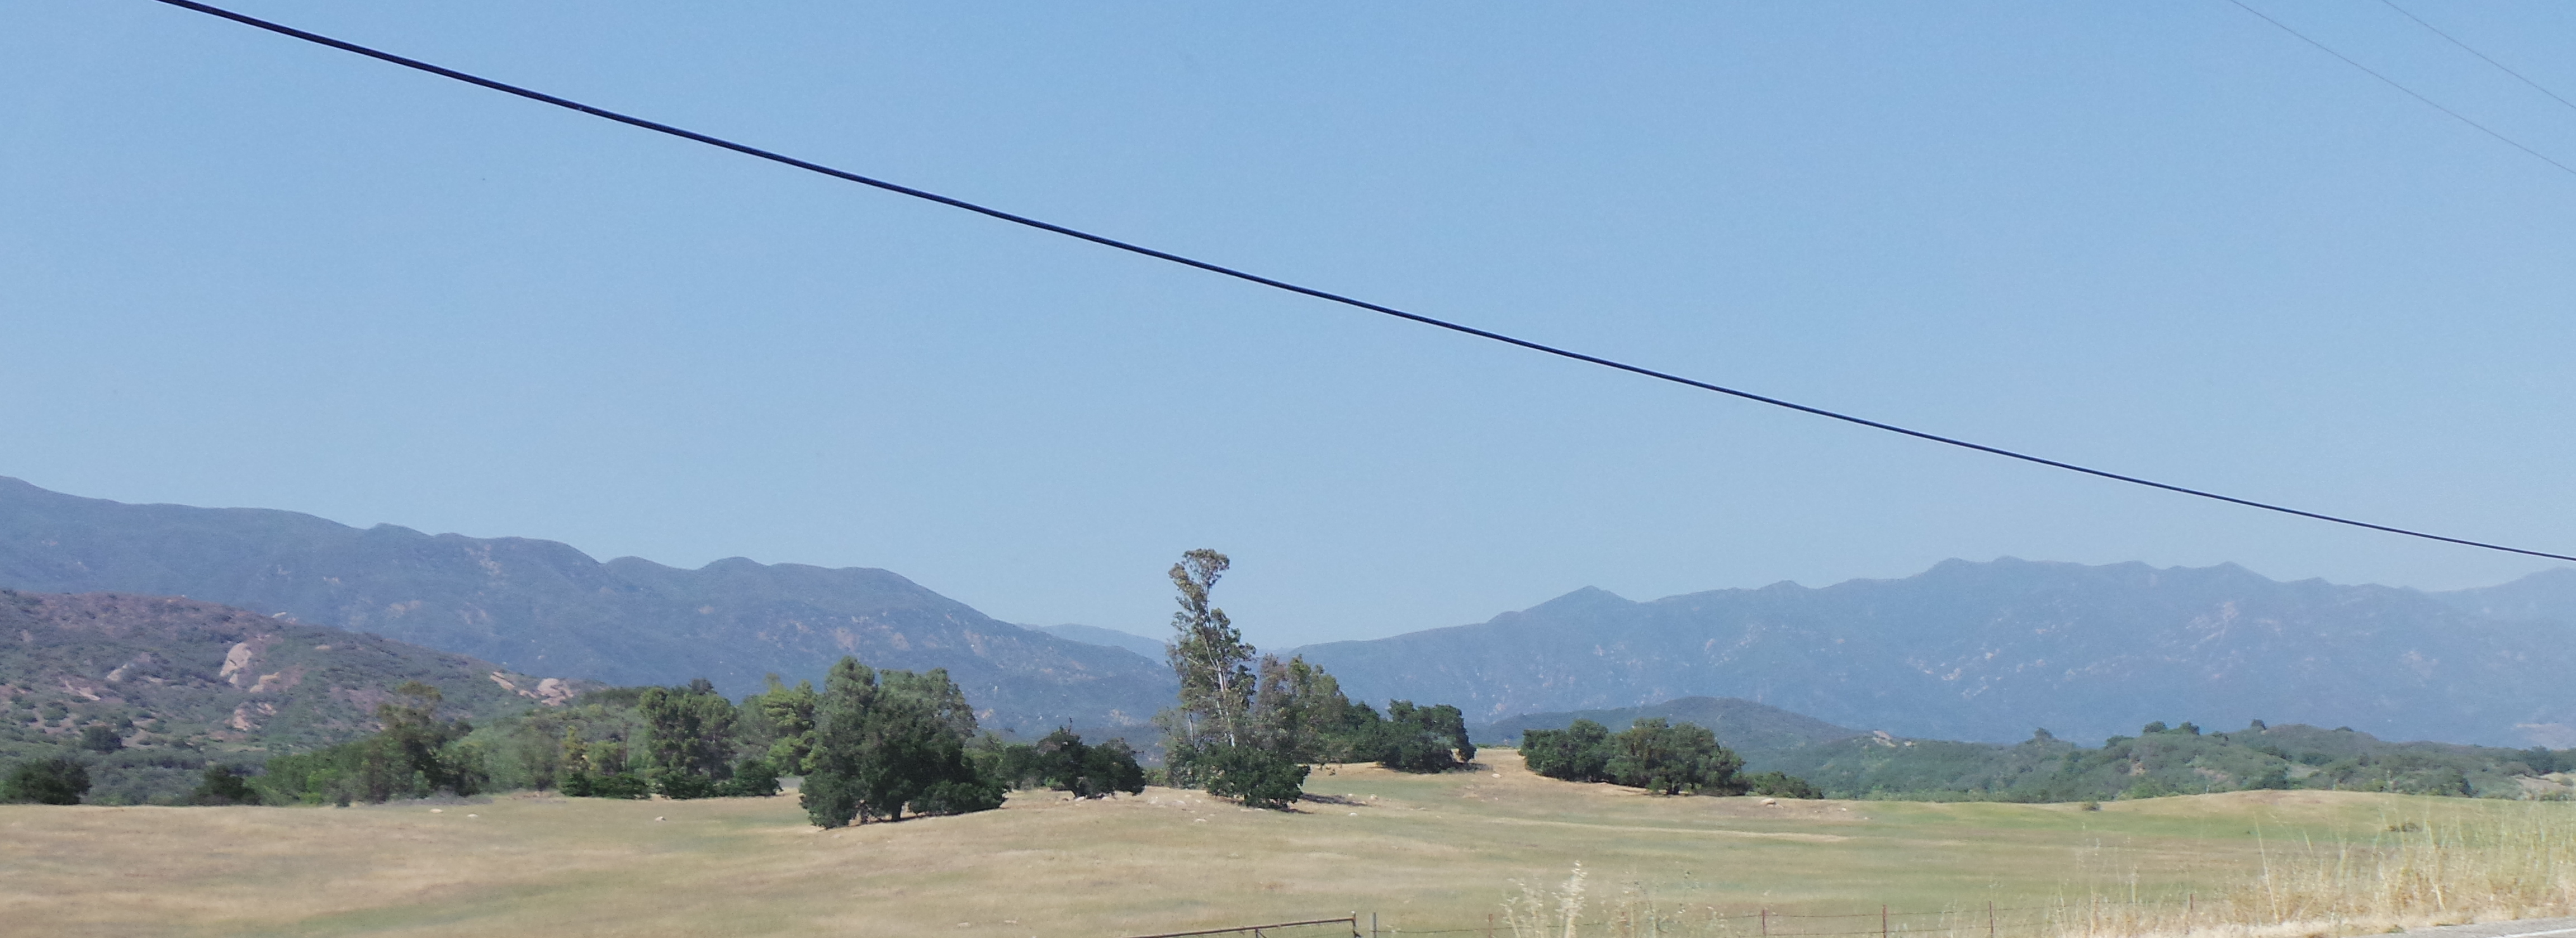 Breathtaking California Landscape on Way to Ojai